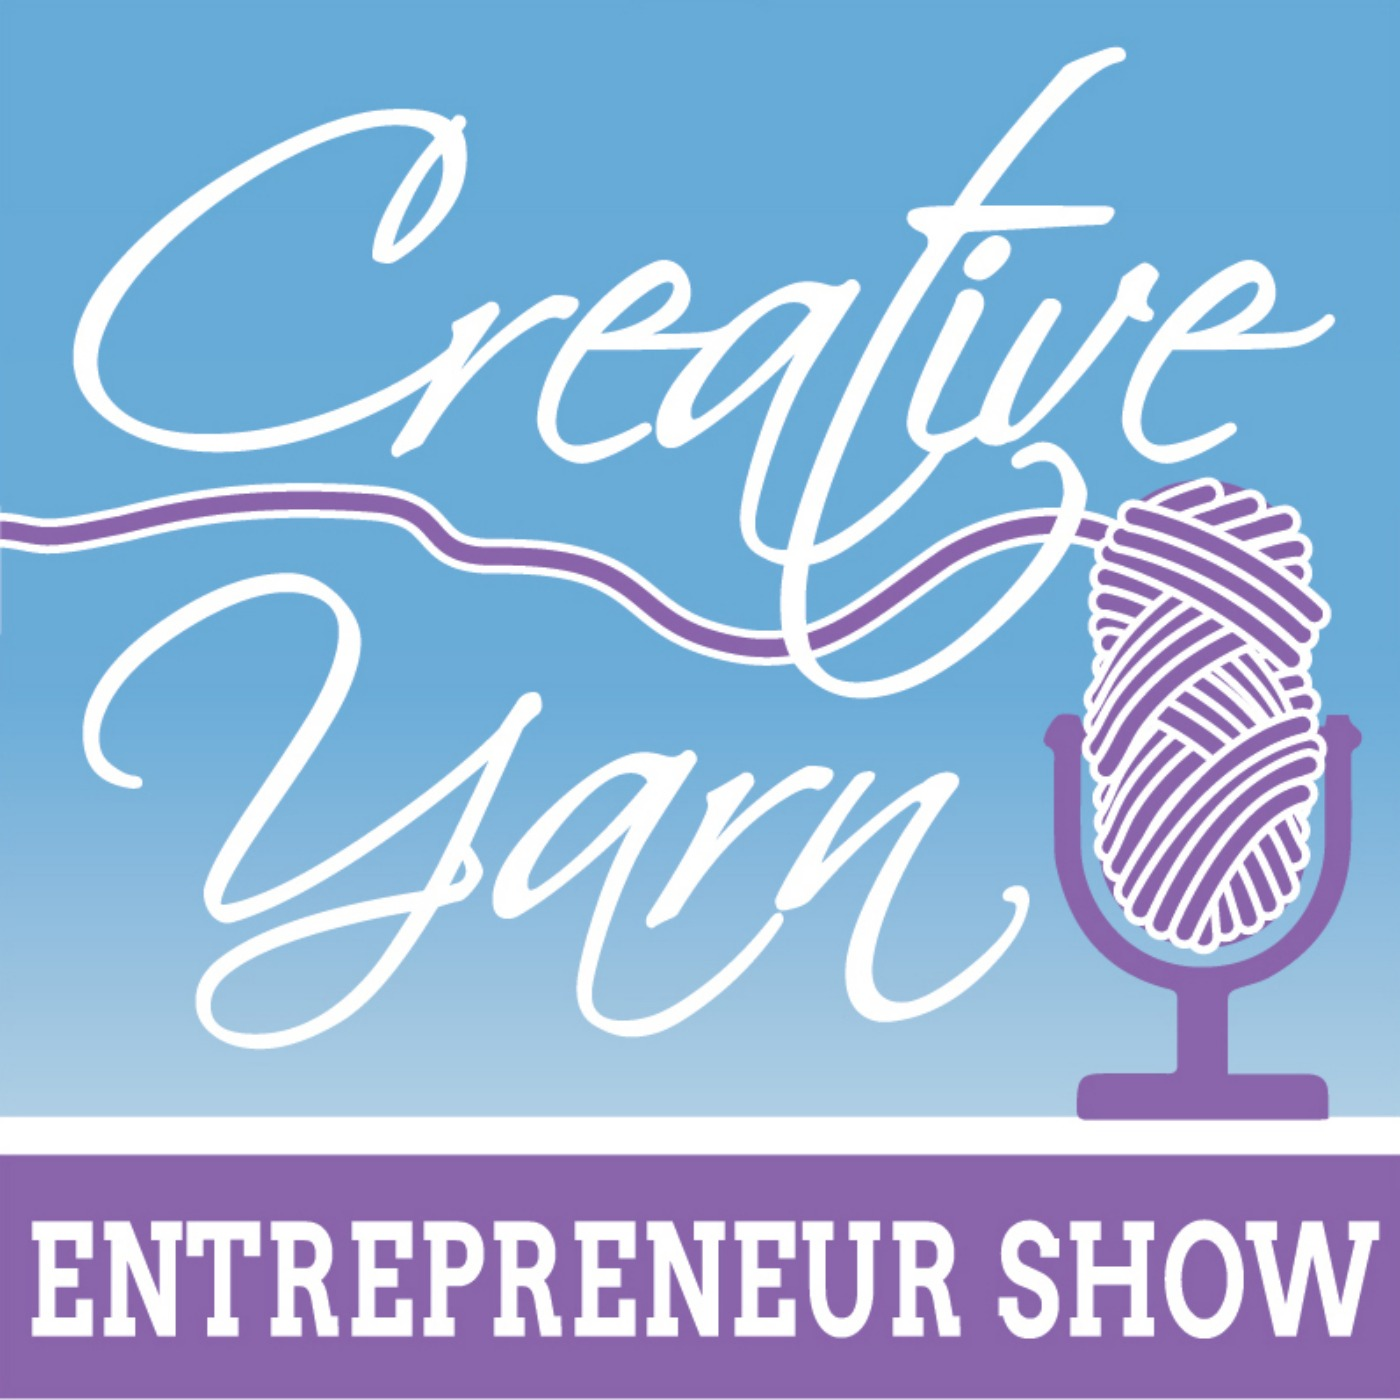 Episode 38: Crochet & Knitting Design & Self-Publishing Mini Series 3: Polishing Your Pattern - The Creative Yarn Entrepreneur Show